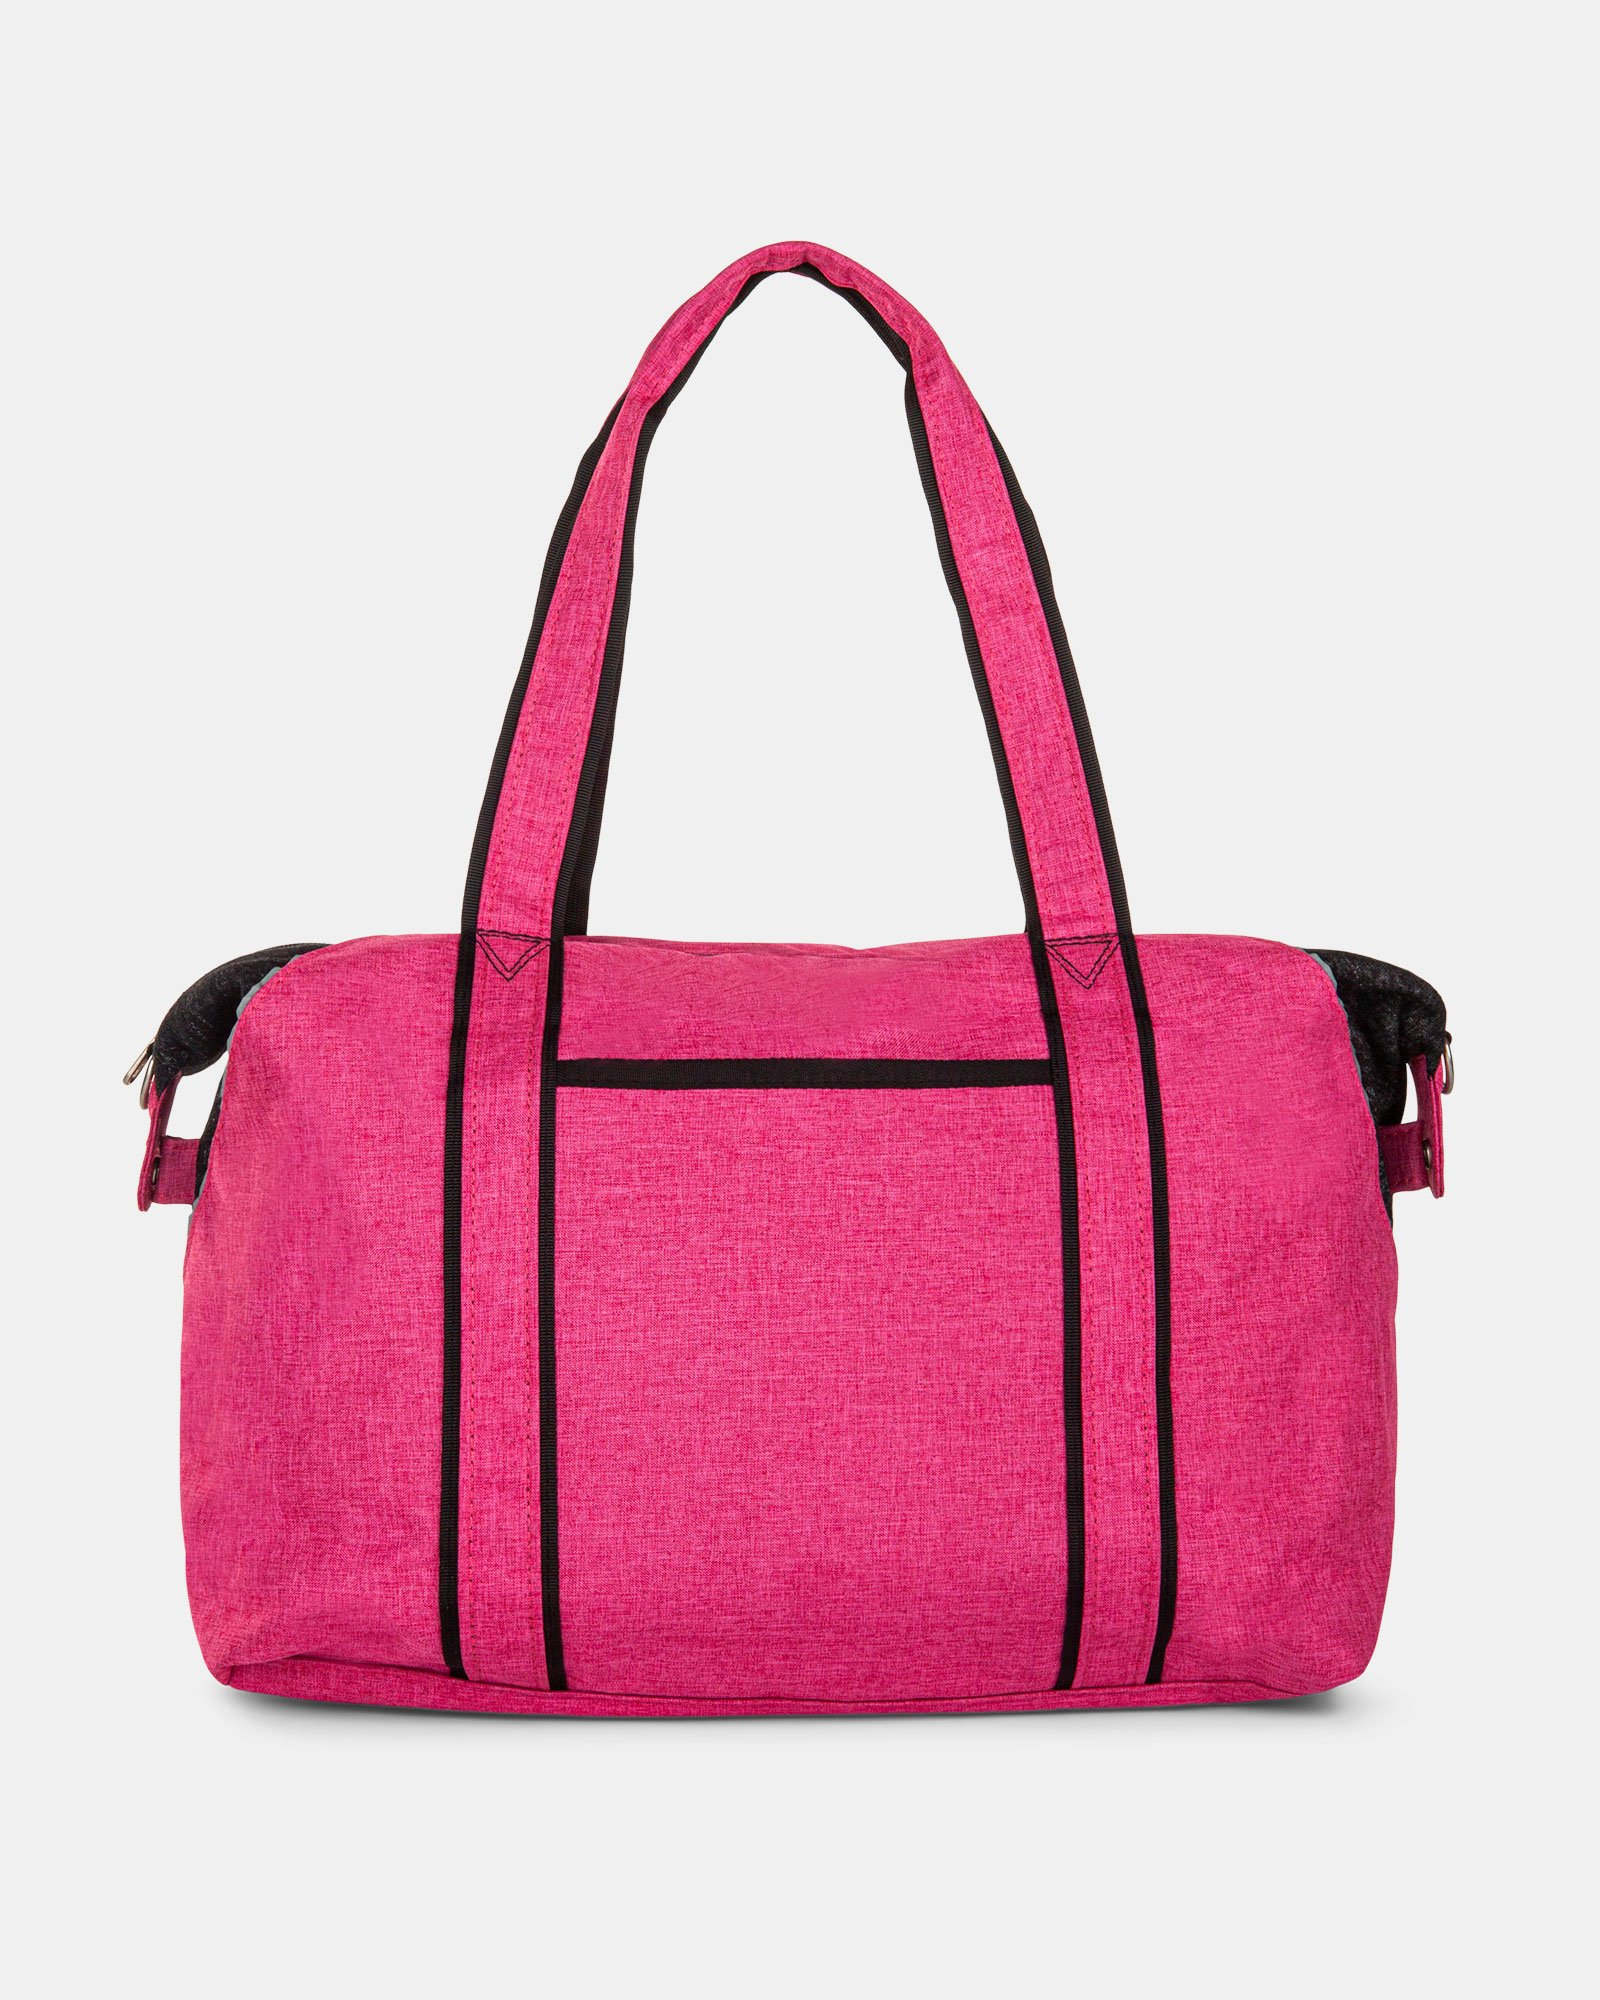 PRIVATE - TOTE BAG FOR DIAPERS IN NYLON - PINK - Mouflon - Zoom